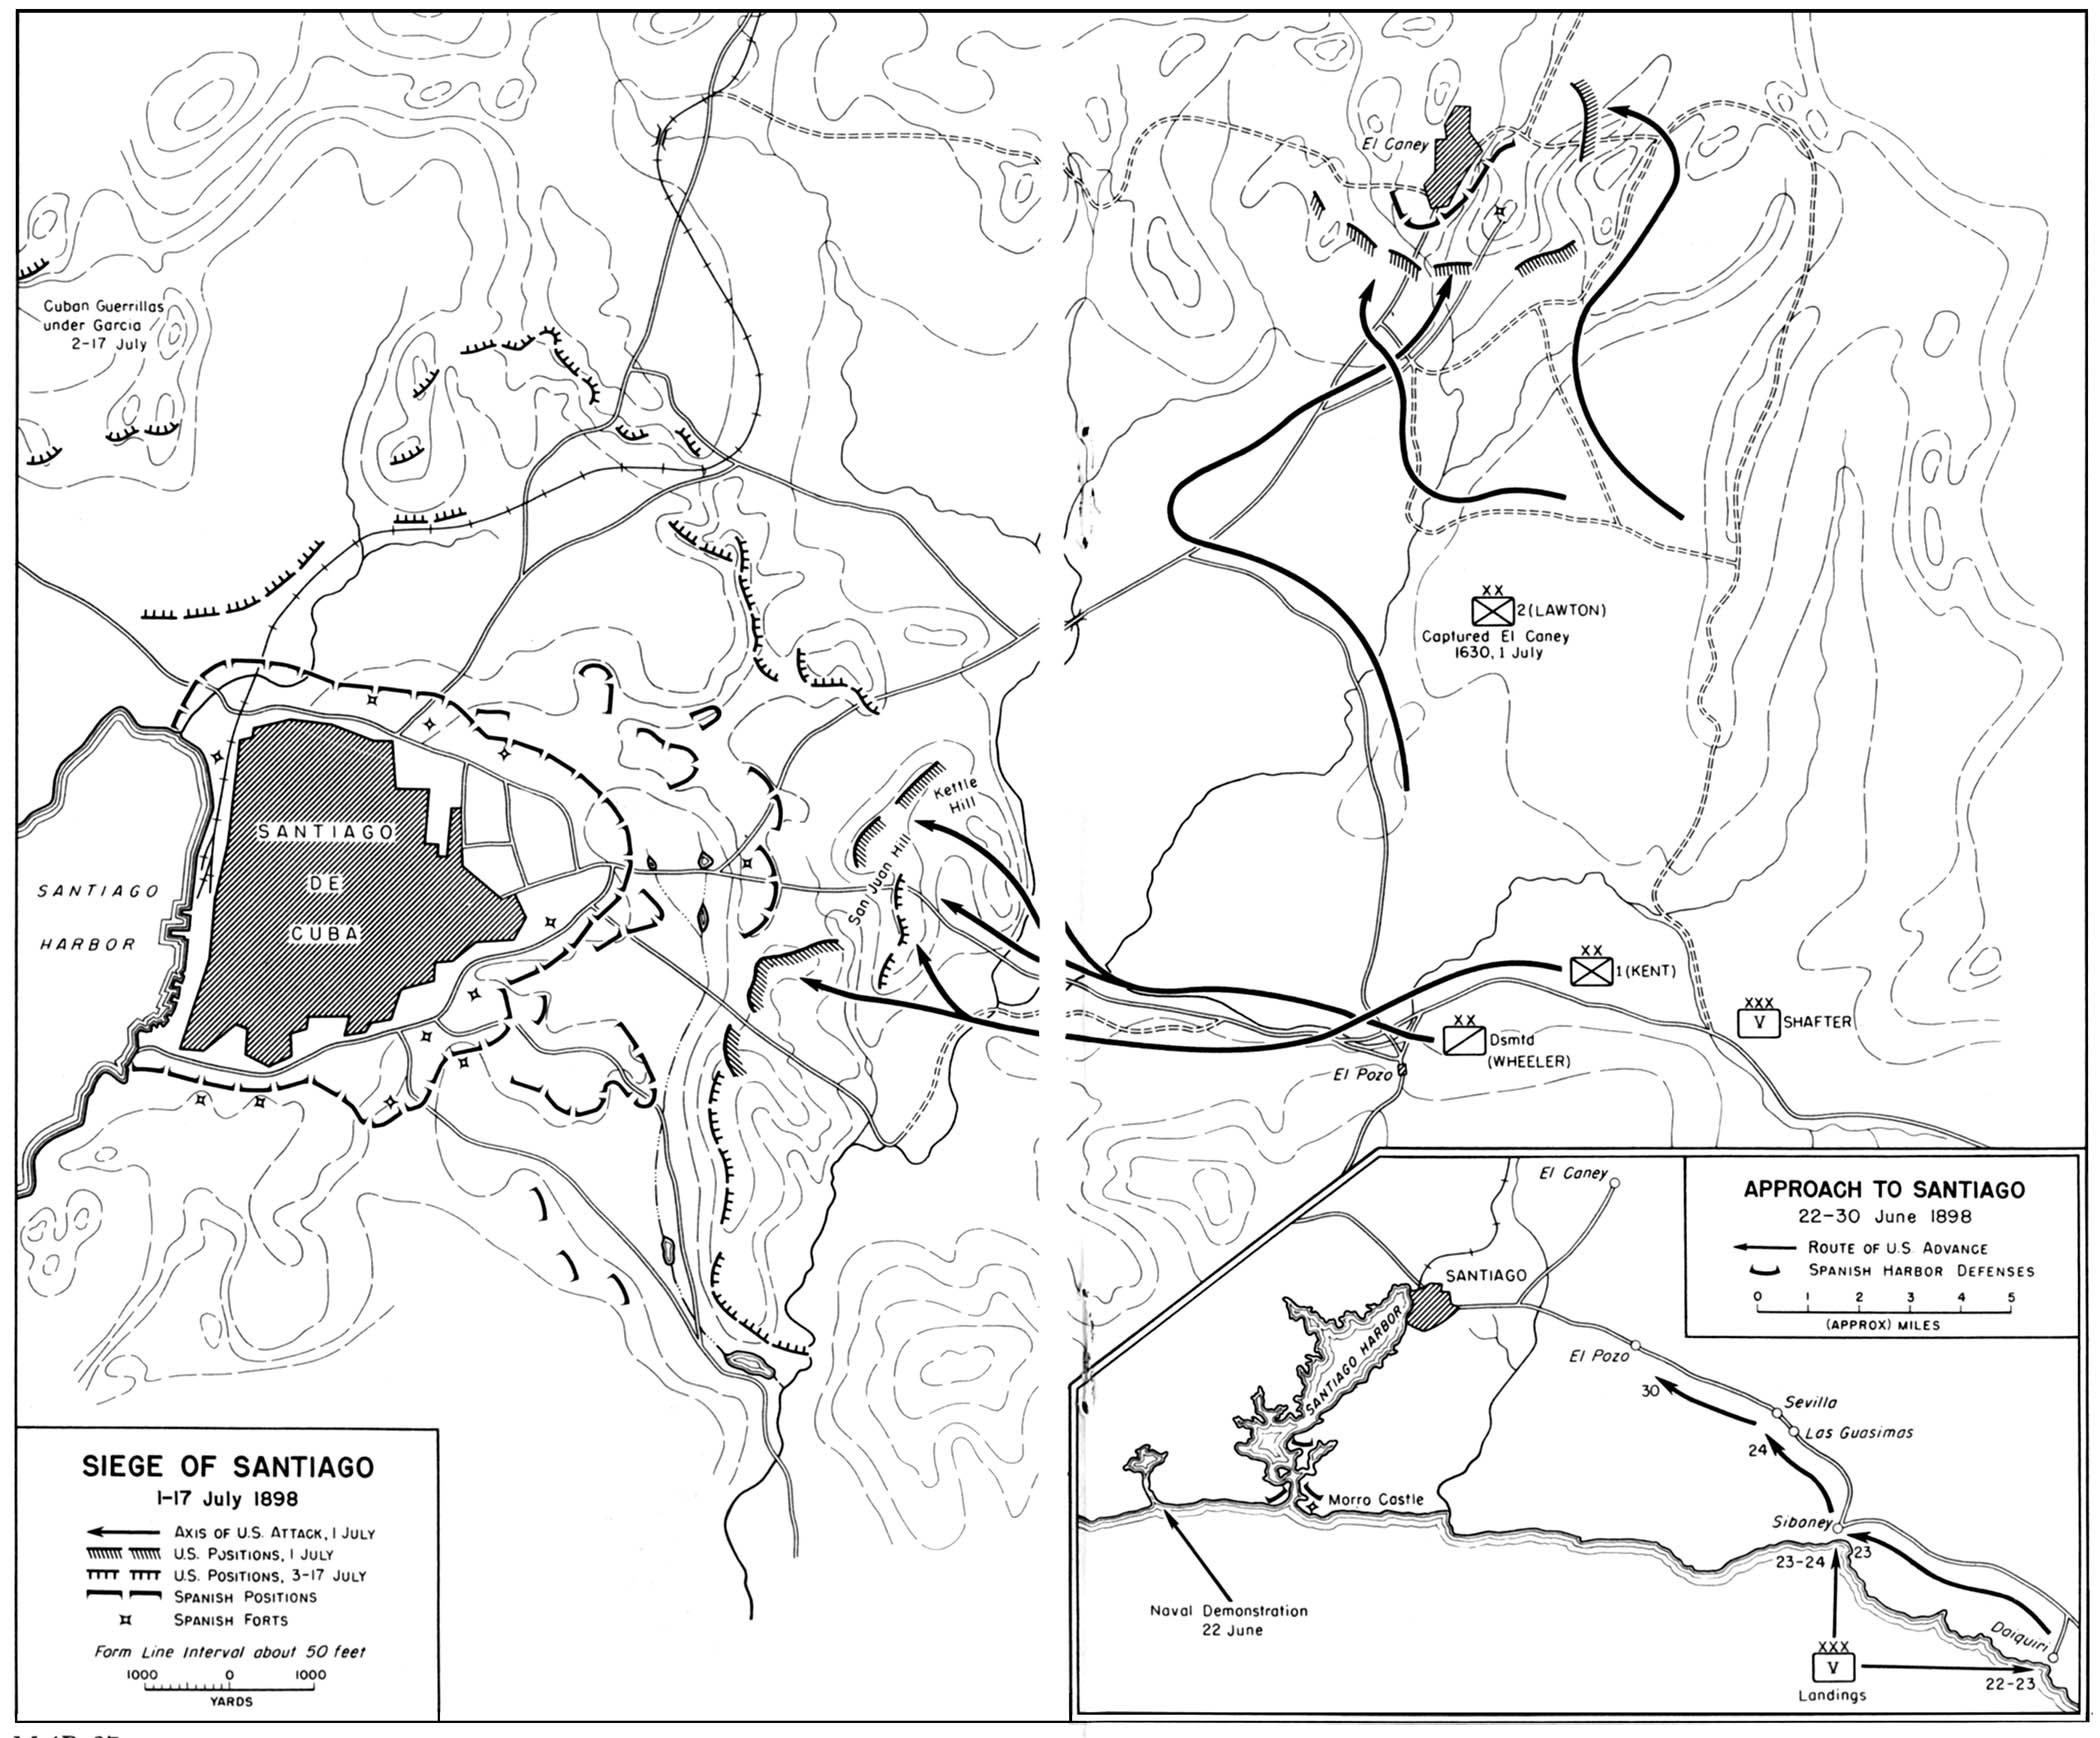 Historical Maps of United States. 1898 - Siege of Santiago 1-17 July 1898 (452K) Inset: Approach to Santiago 22-30 June 1898